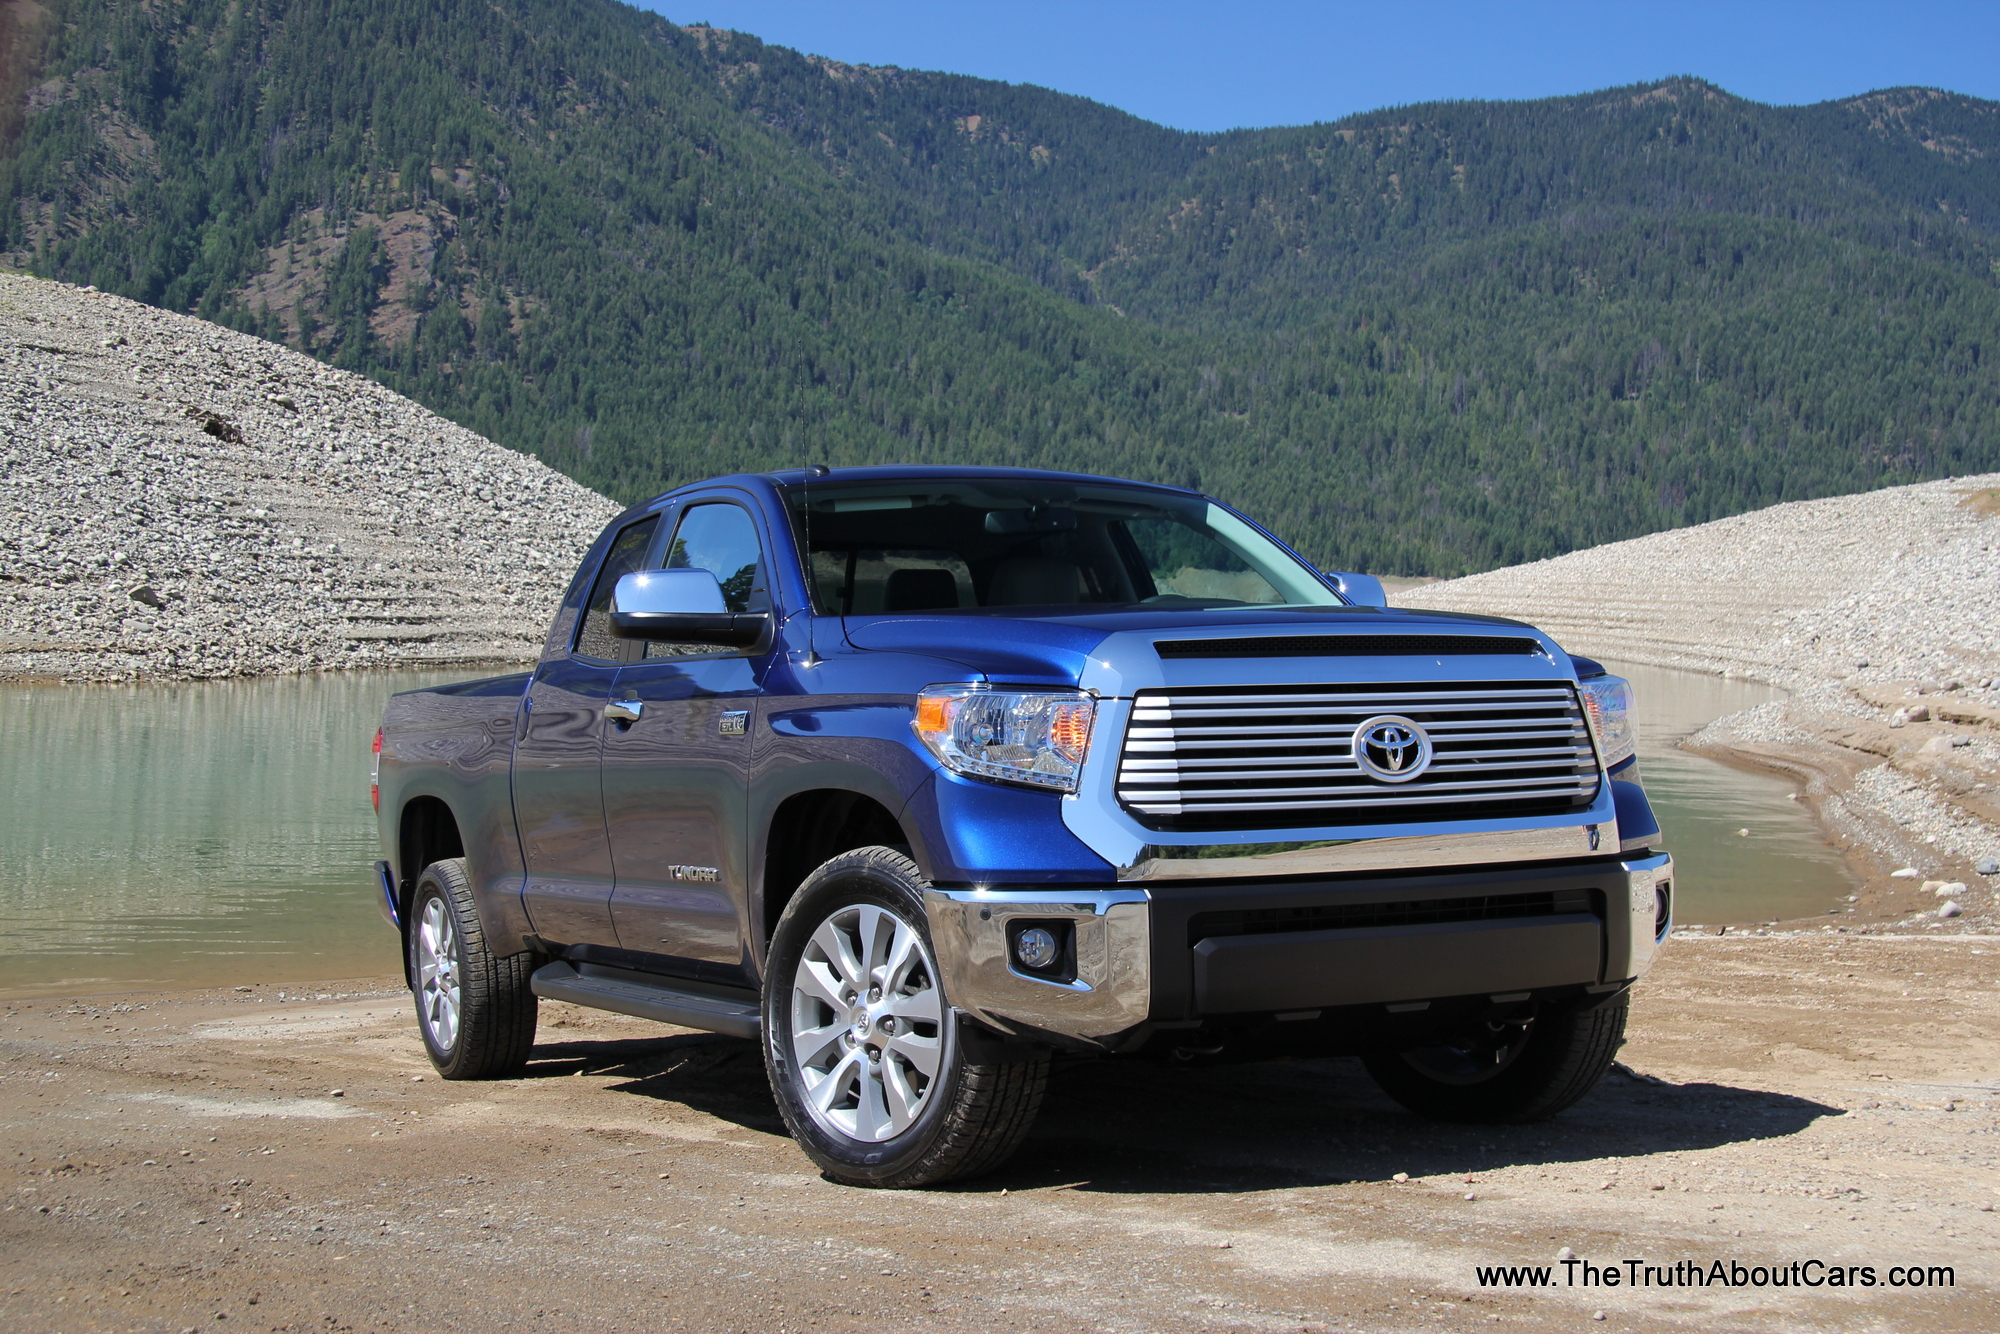 Pre Production Review 2014 Toyota Tundra With Video The Truth Need 57 F100 Custom Cab Wiring Diagram Ford Truck Enthusiasts Flew Me To Seattle Sample Refresh